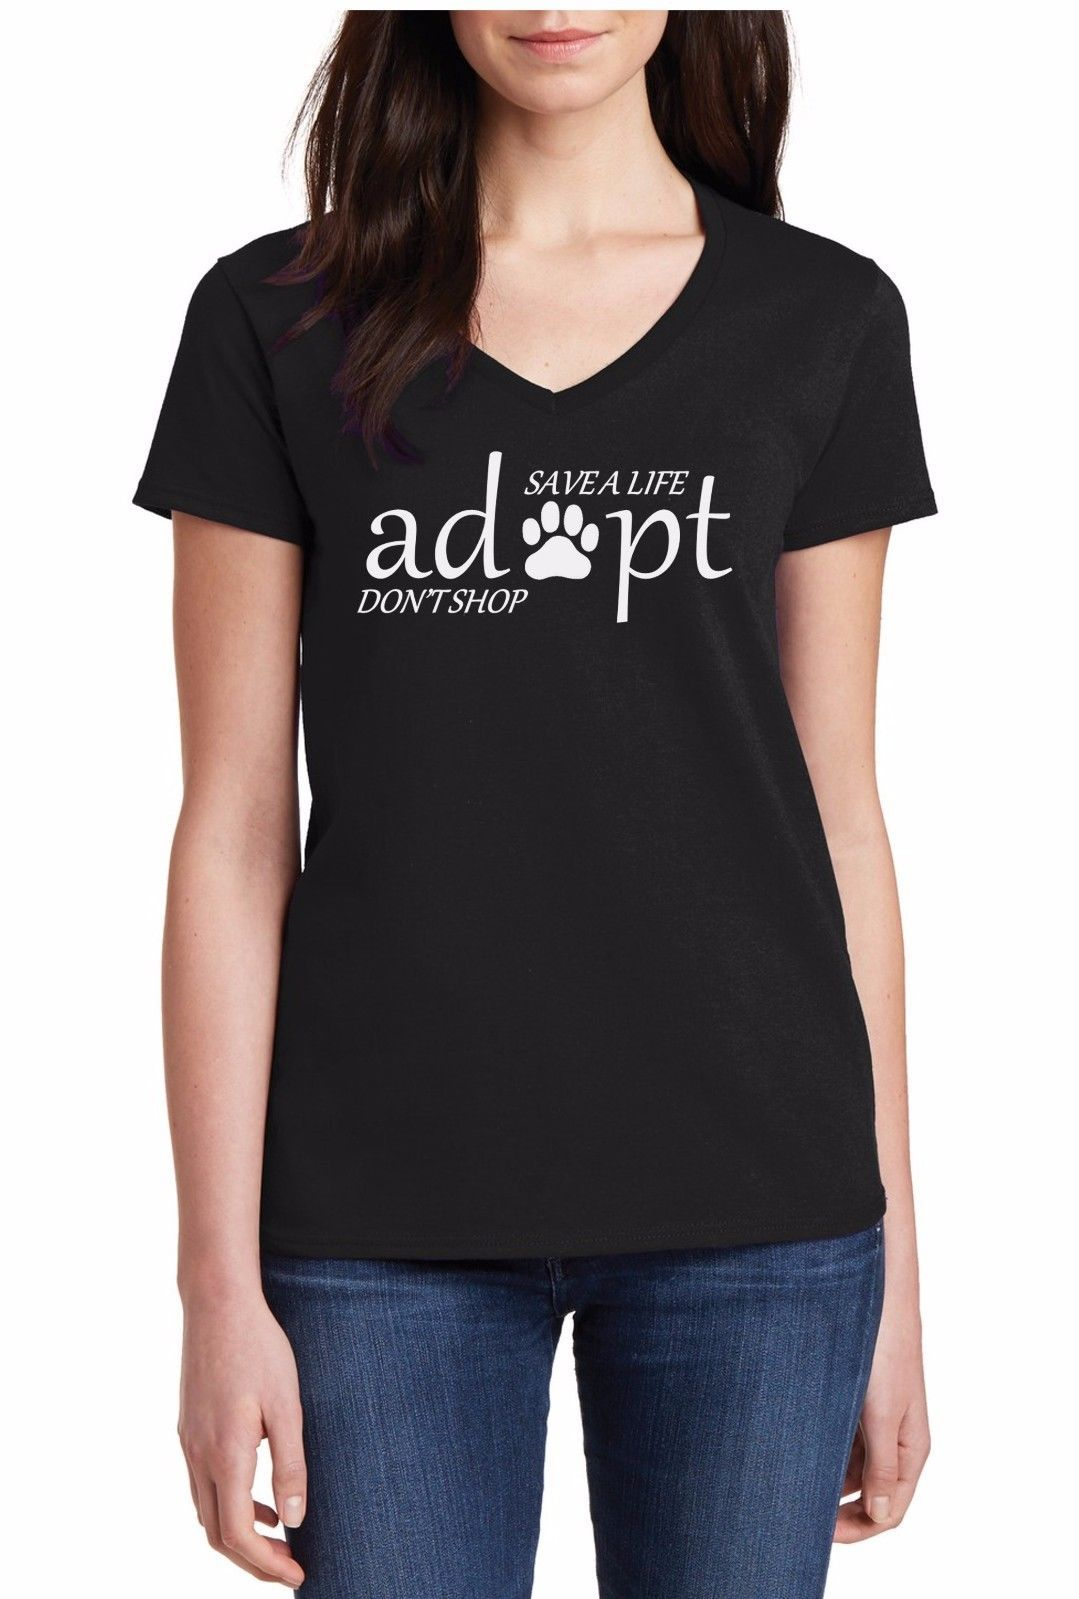 Ladies V-neck Adopt Don/'t Shop Shirt Pet Adoption Mothers Day Animal Lover Gift